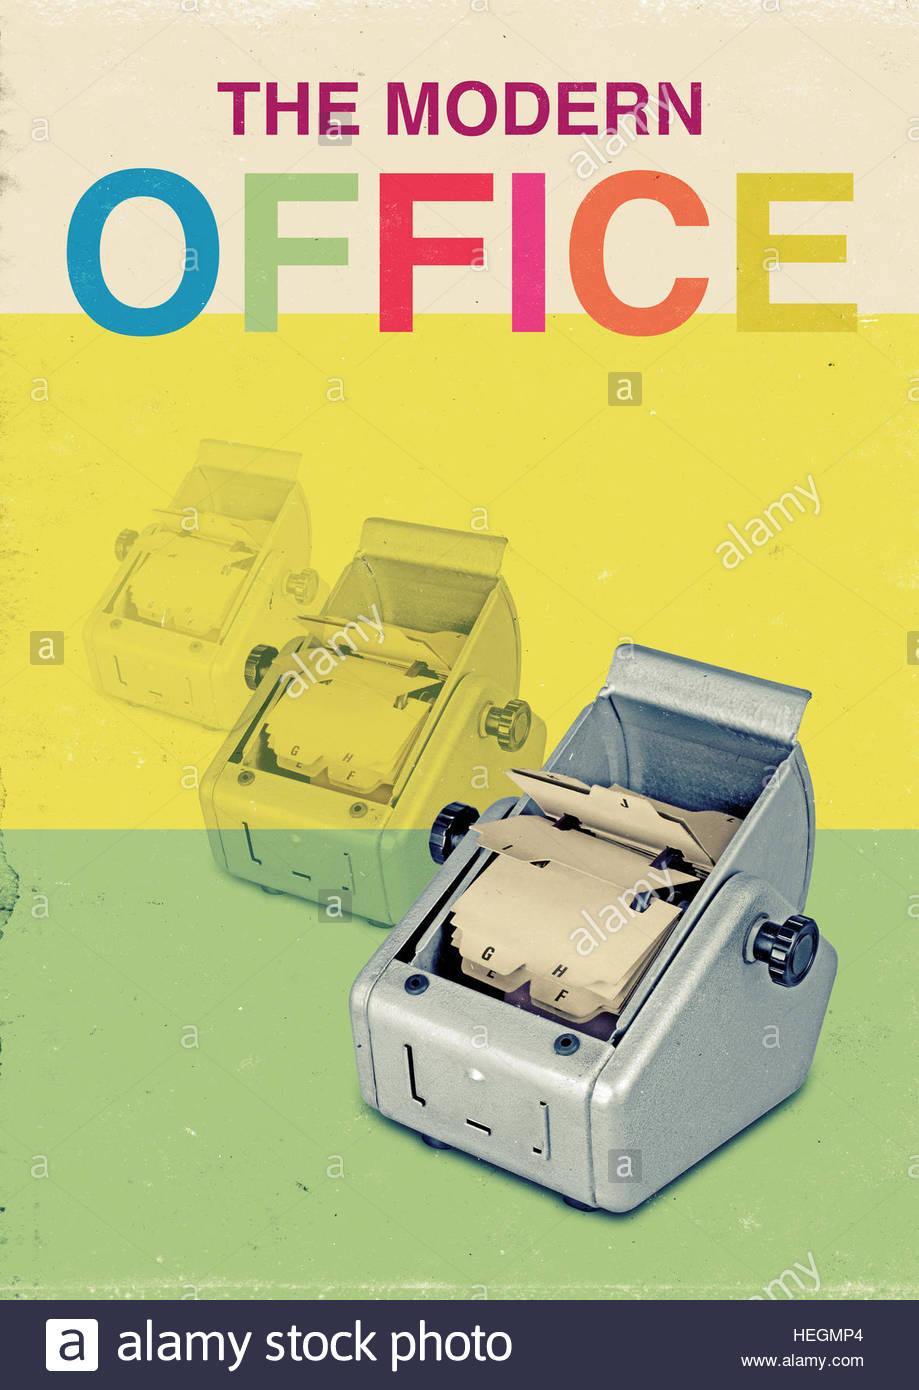 The modern office address rotary file mid century retro vintage lifestyle - Stock Image